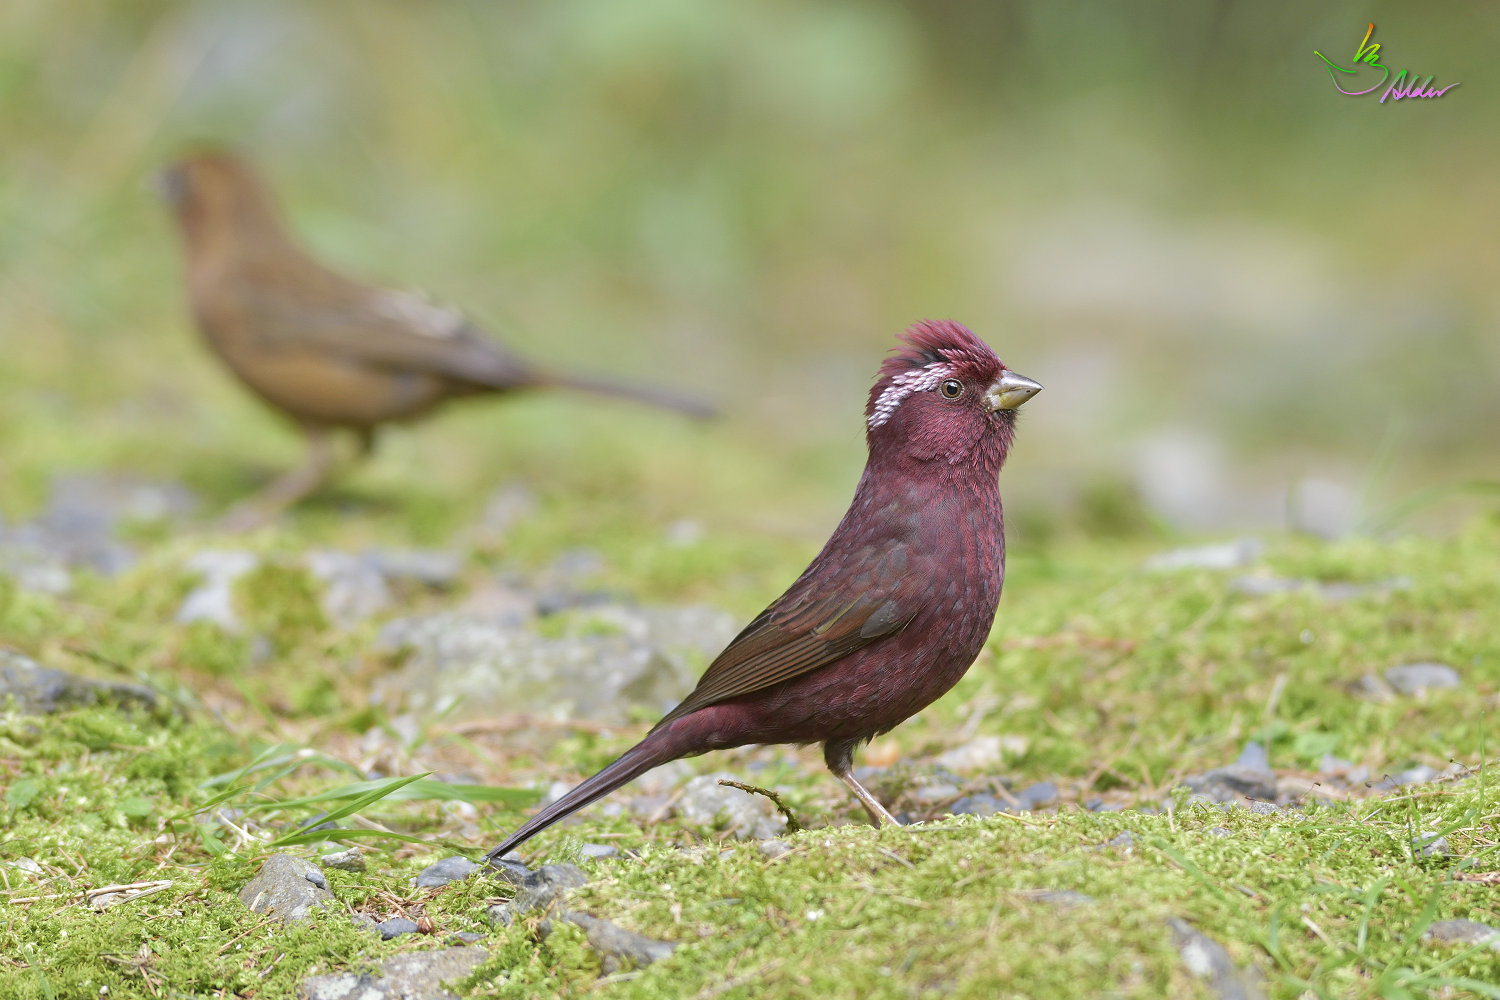 Vinacceus_Rose_Finch_5424